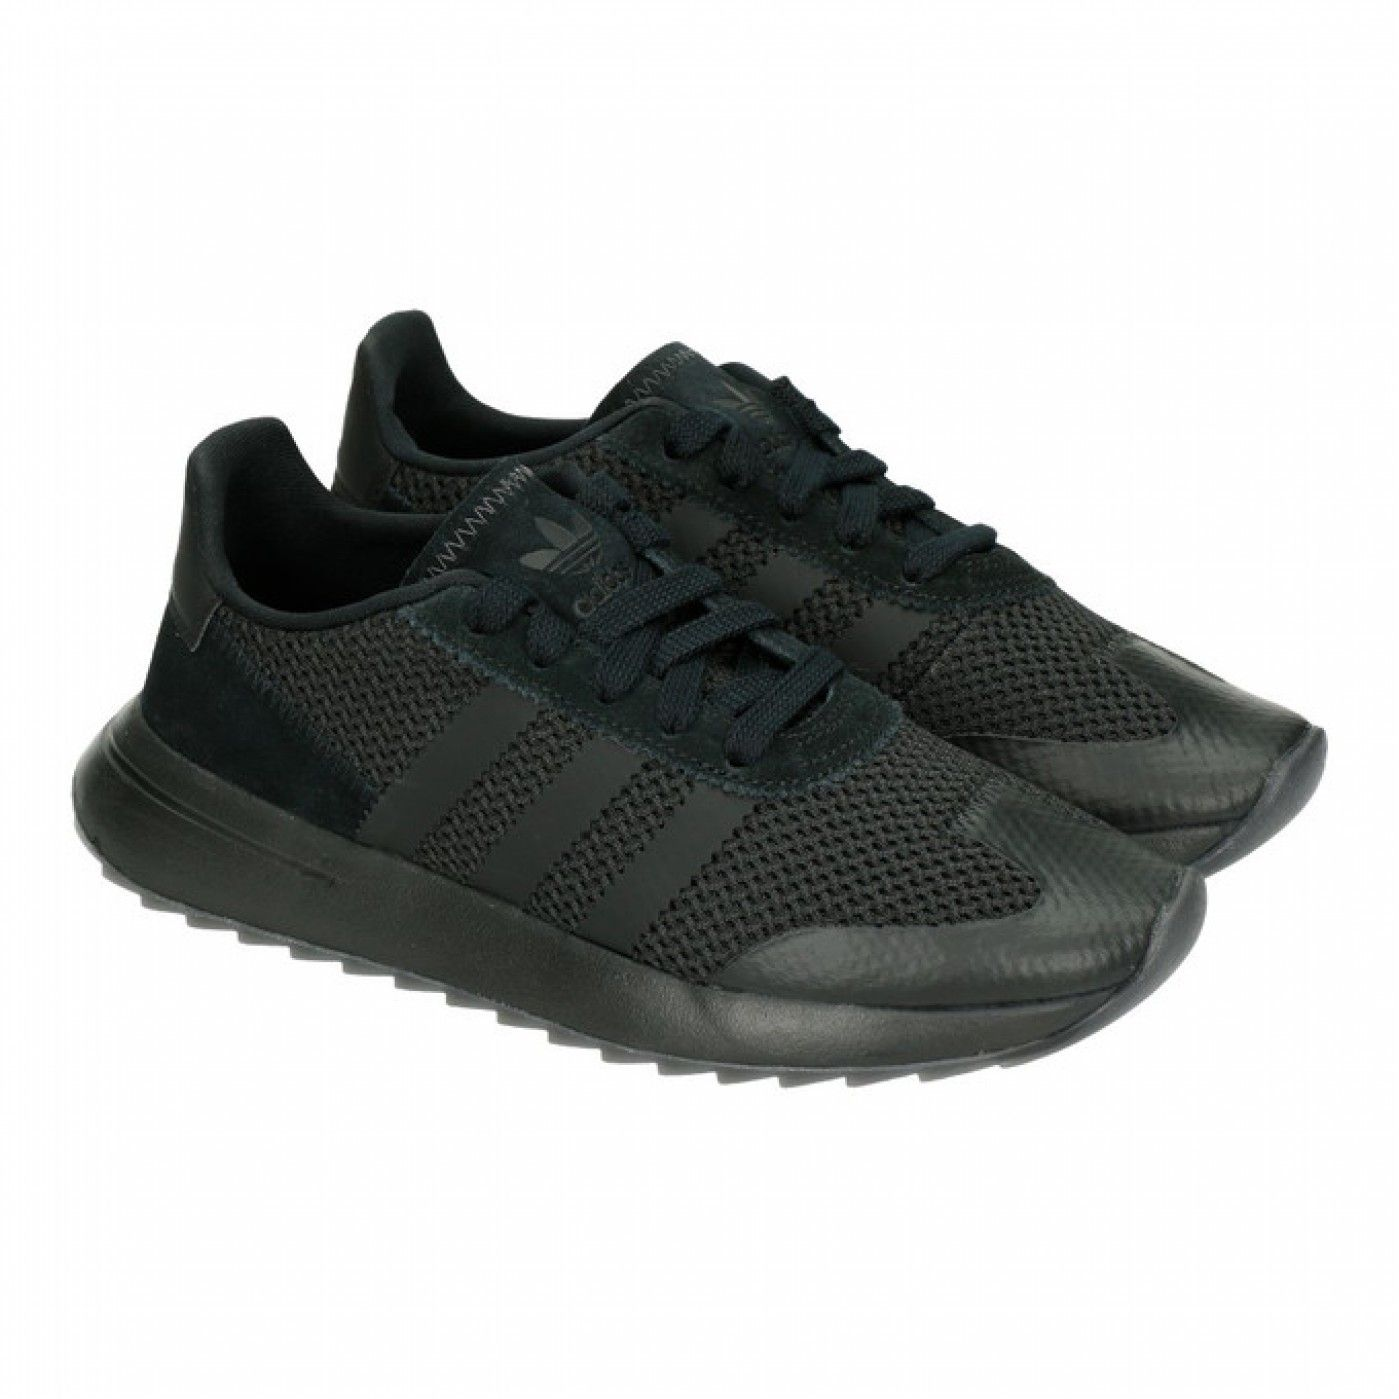 In Adidas AdidasShoesSneakers Flashback 2019 By9308Shoes m8nwN0